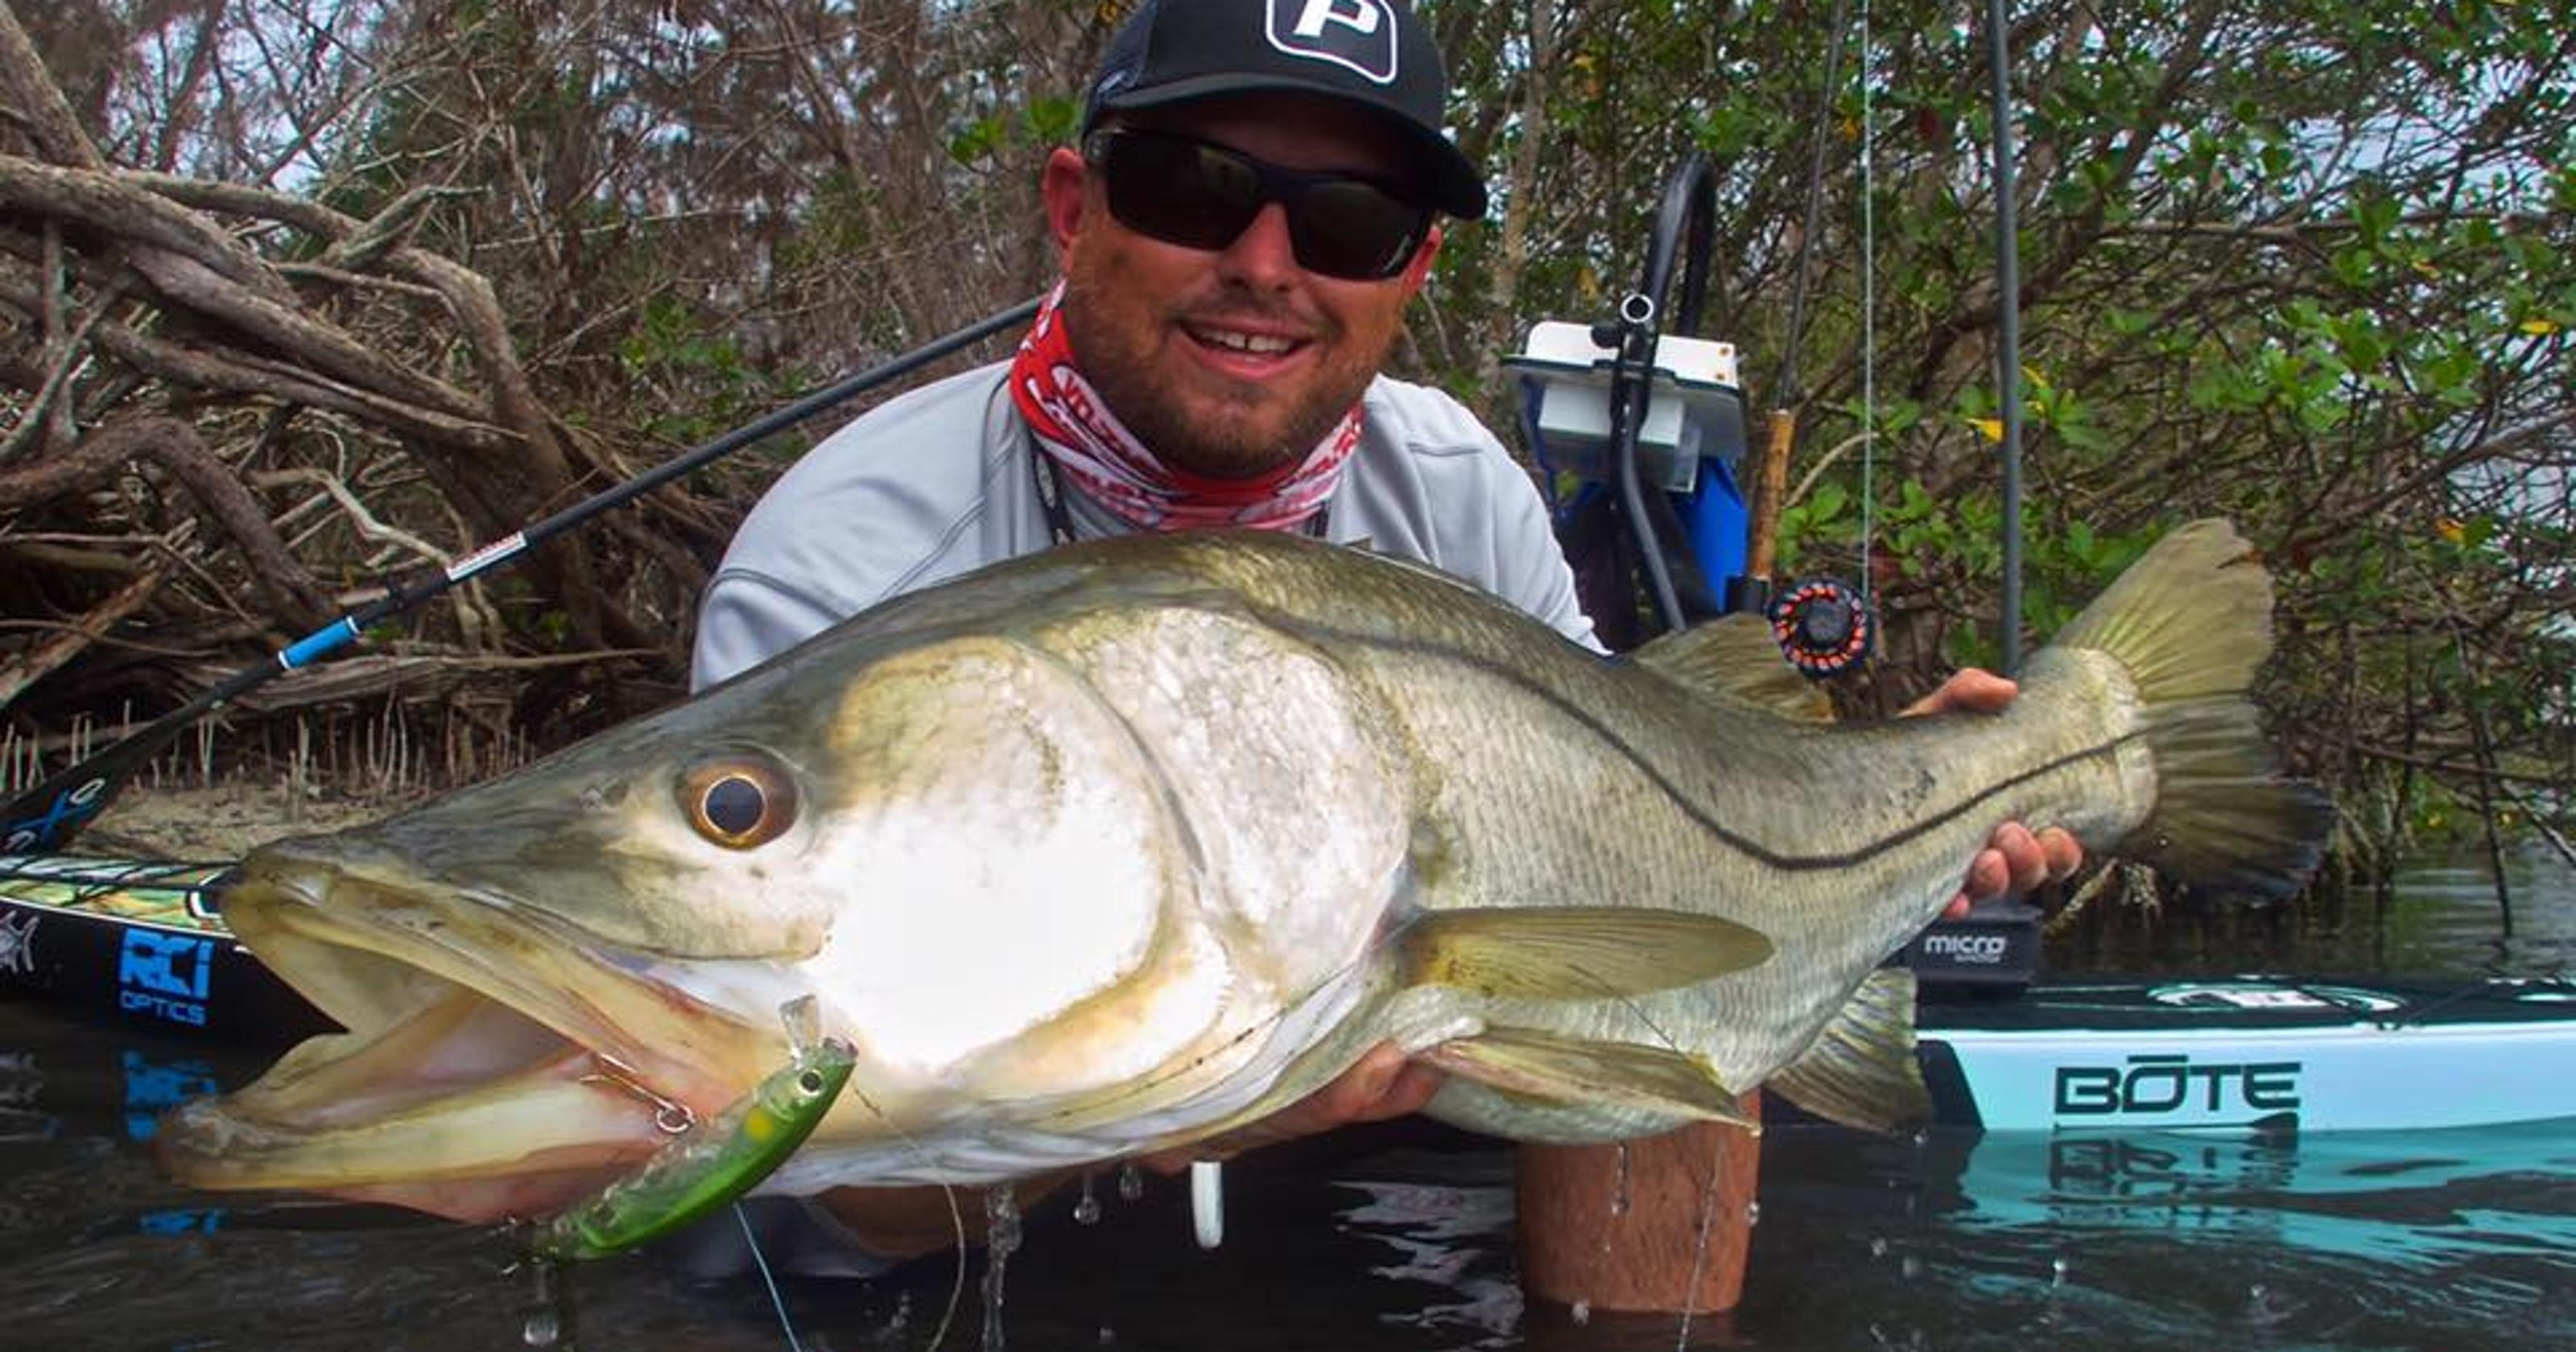 Snook season is open for eastern Florida anglers